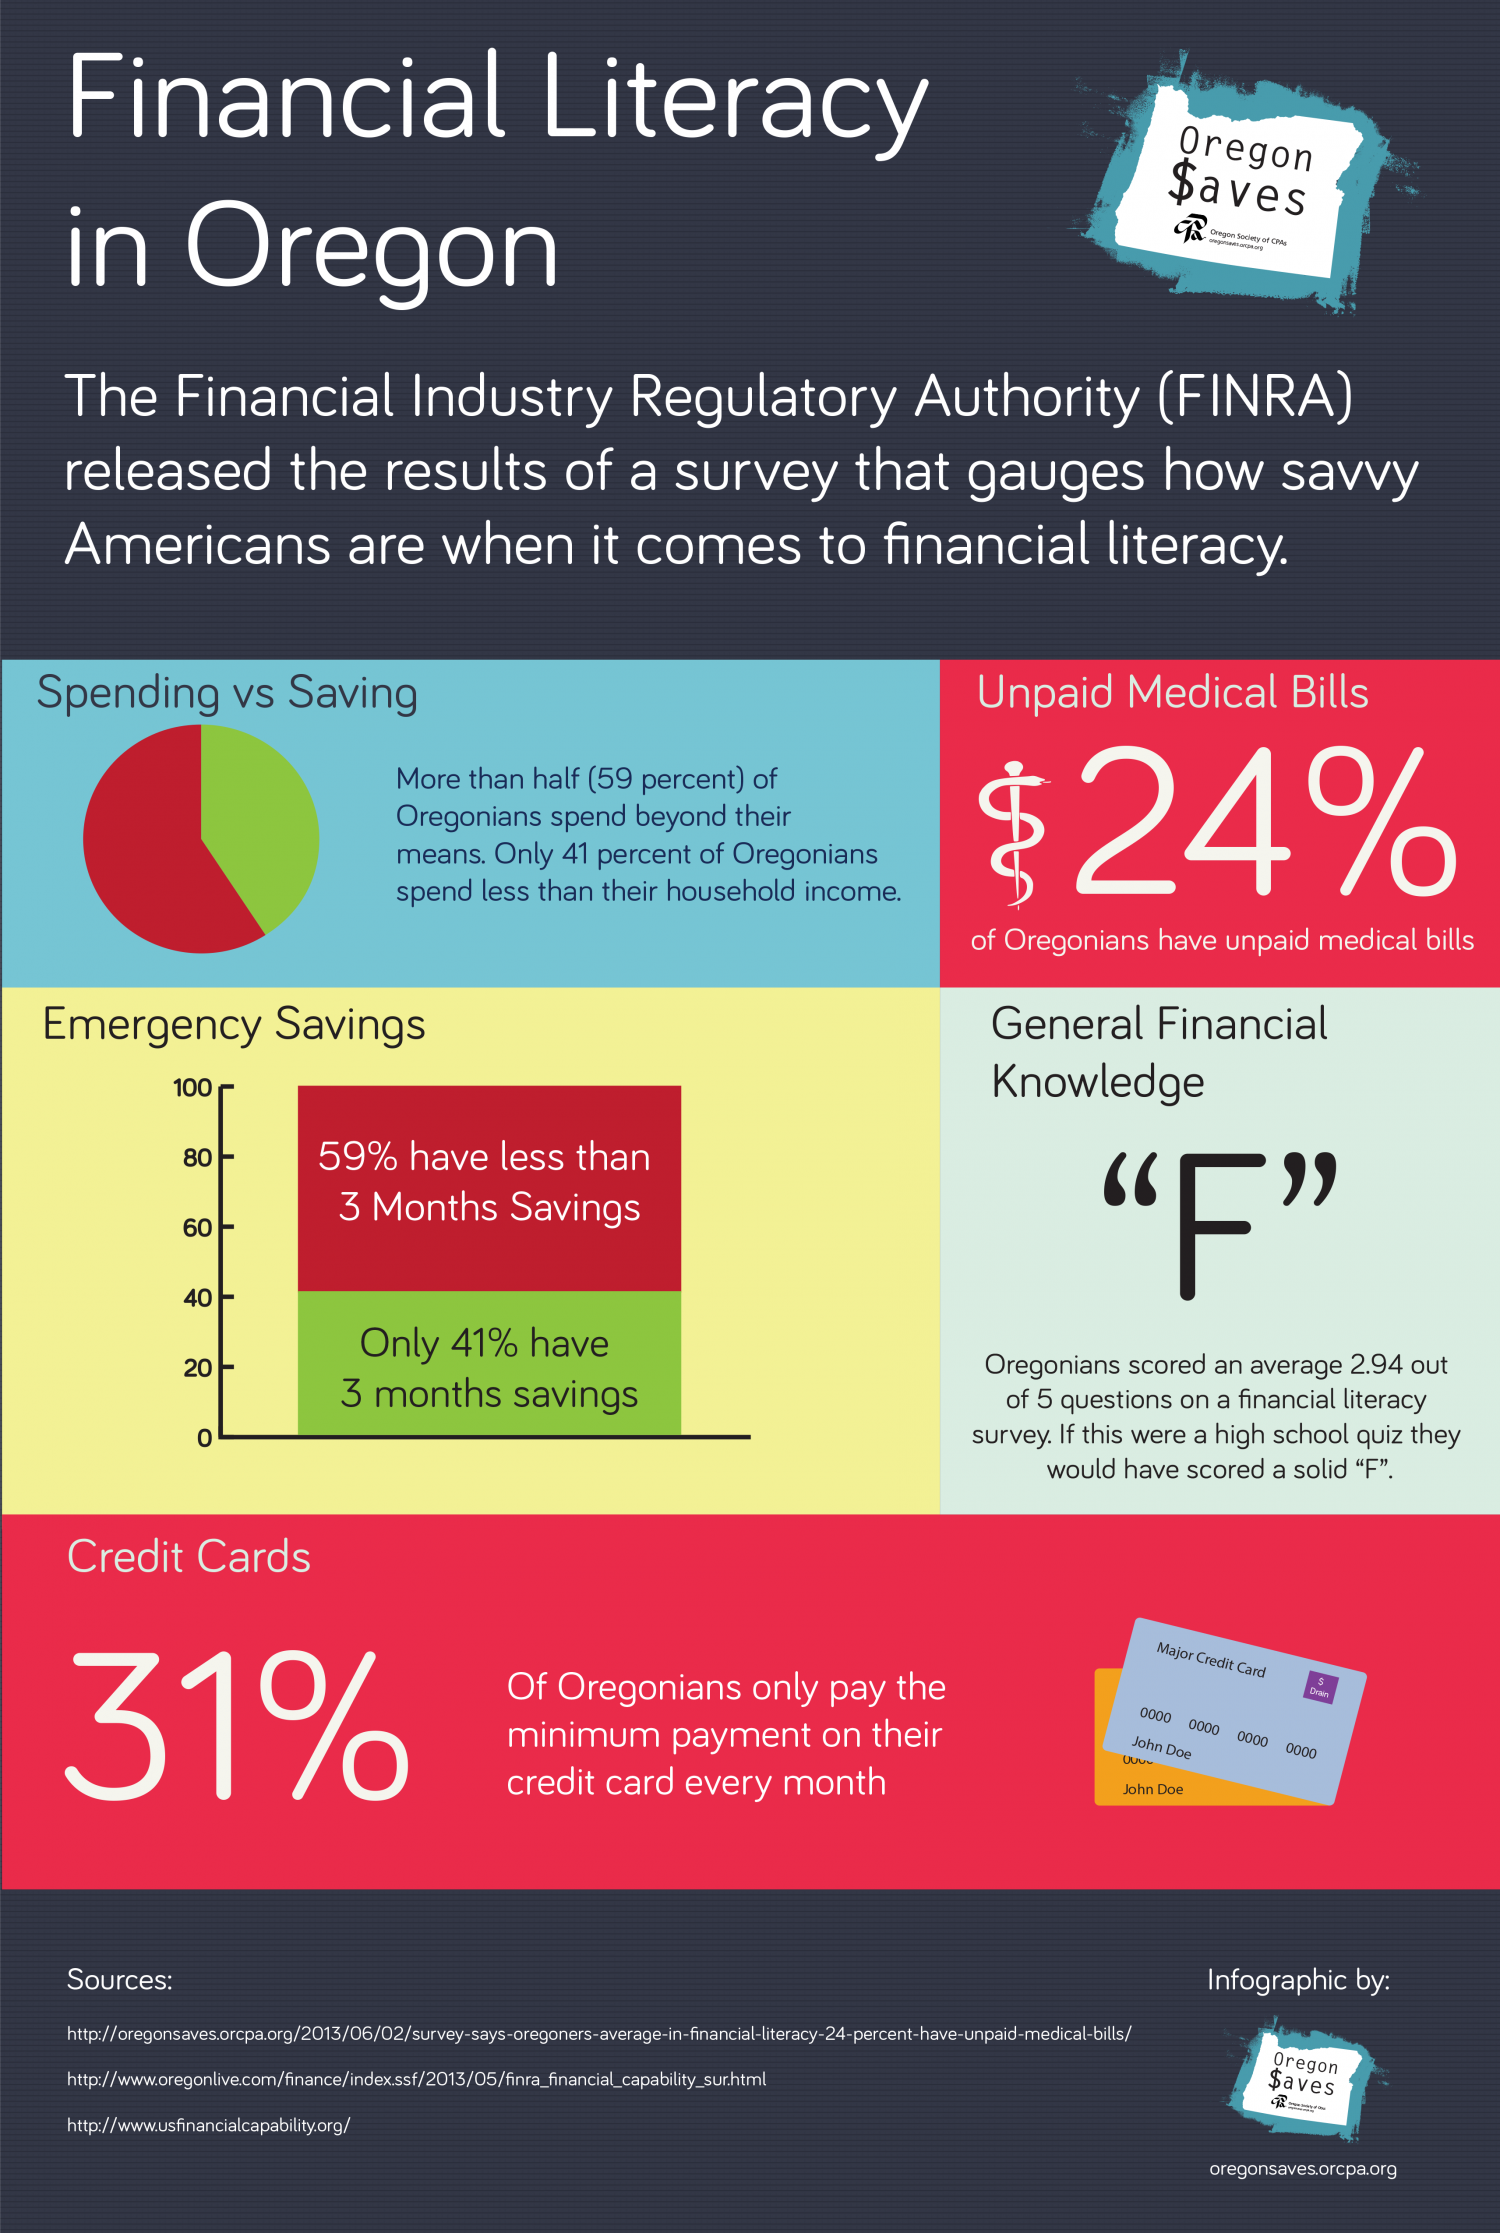 Financial Literacy in Oregon Infographic